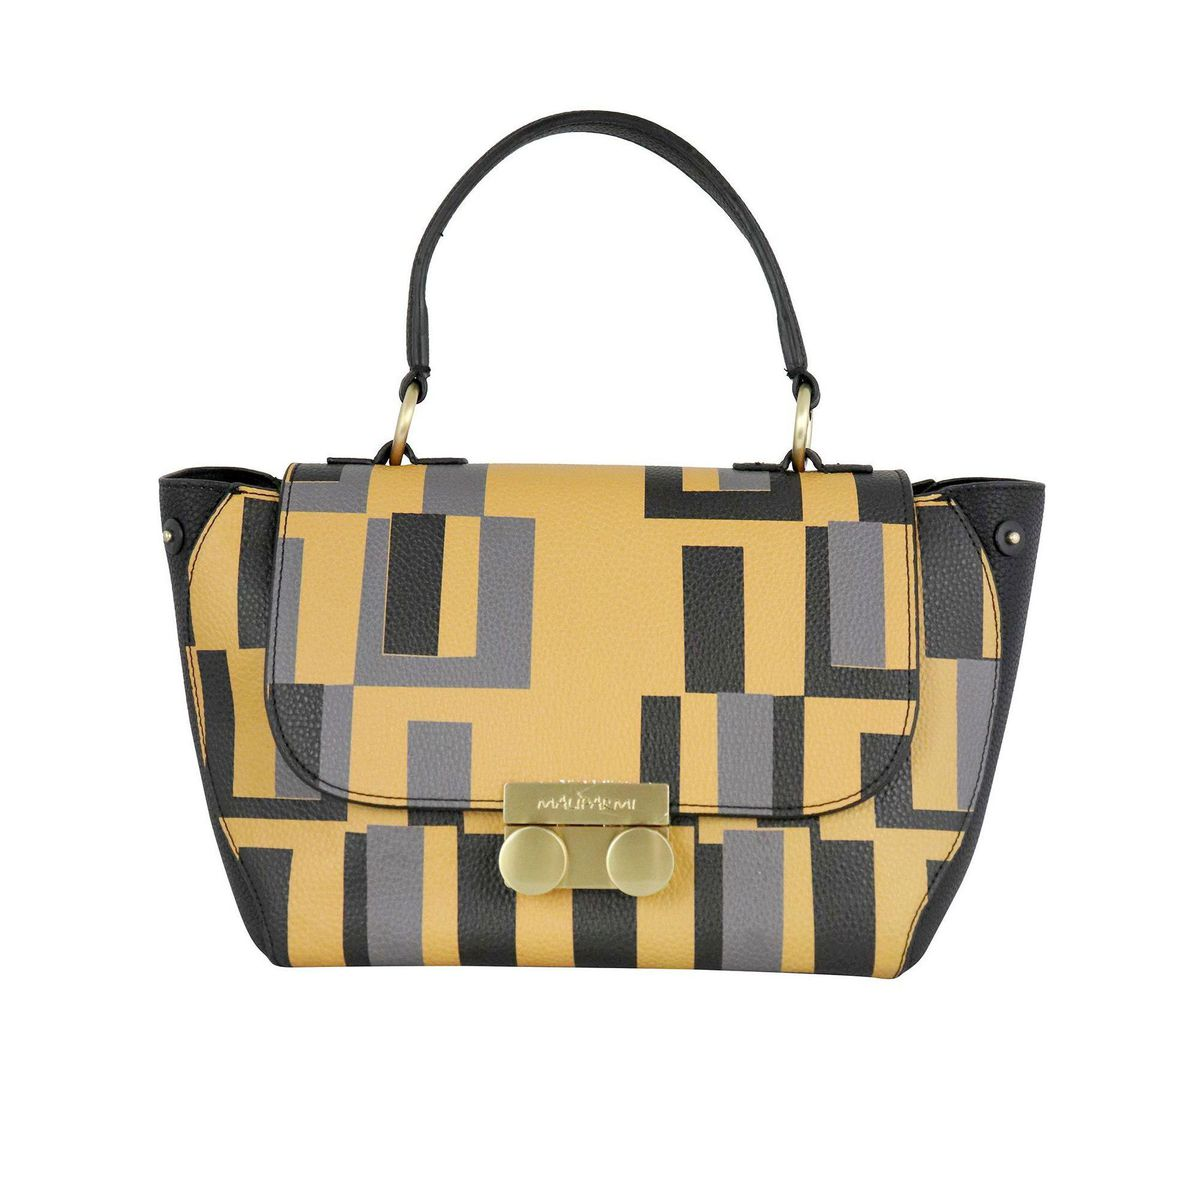 Medium Grainy Printed Handbag Mustard Maliparmi